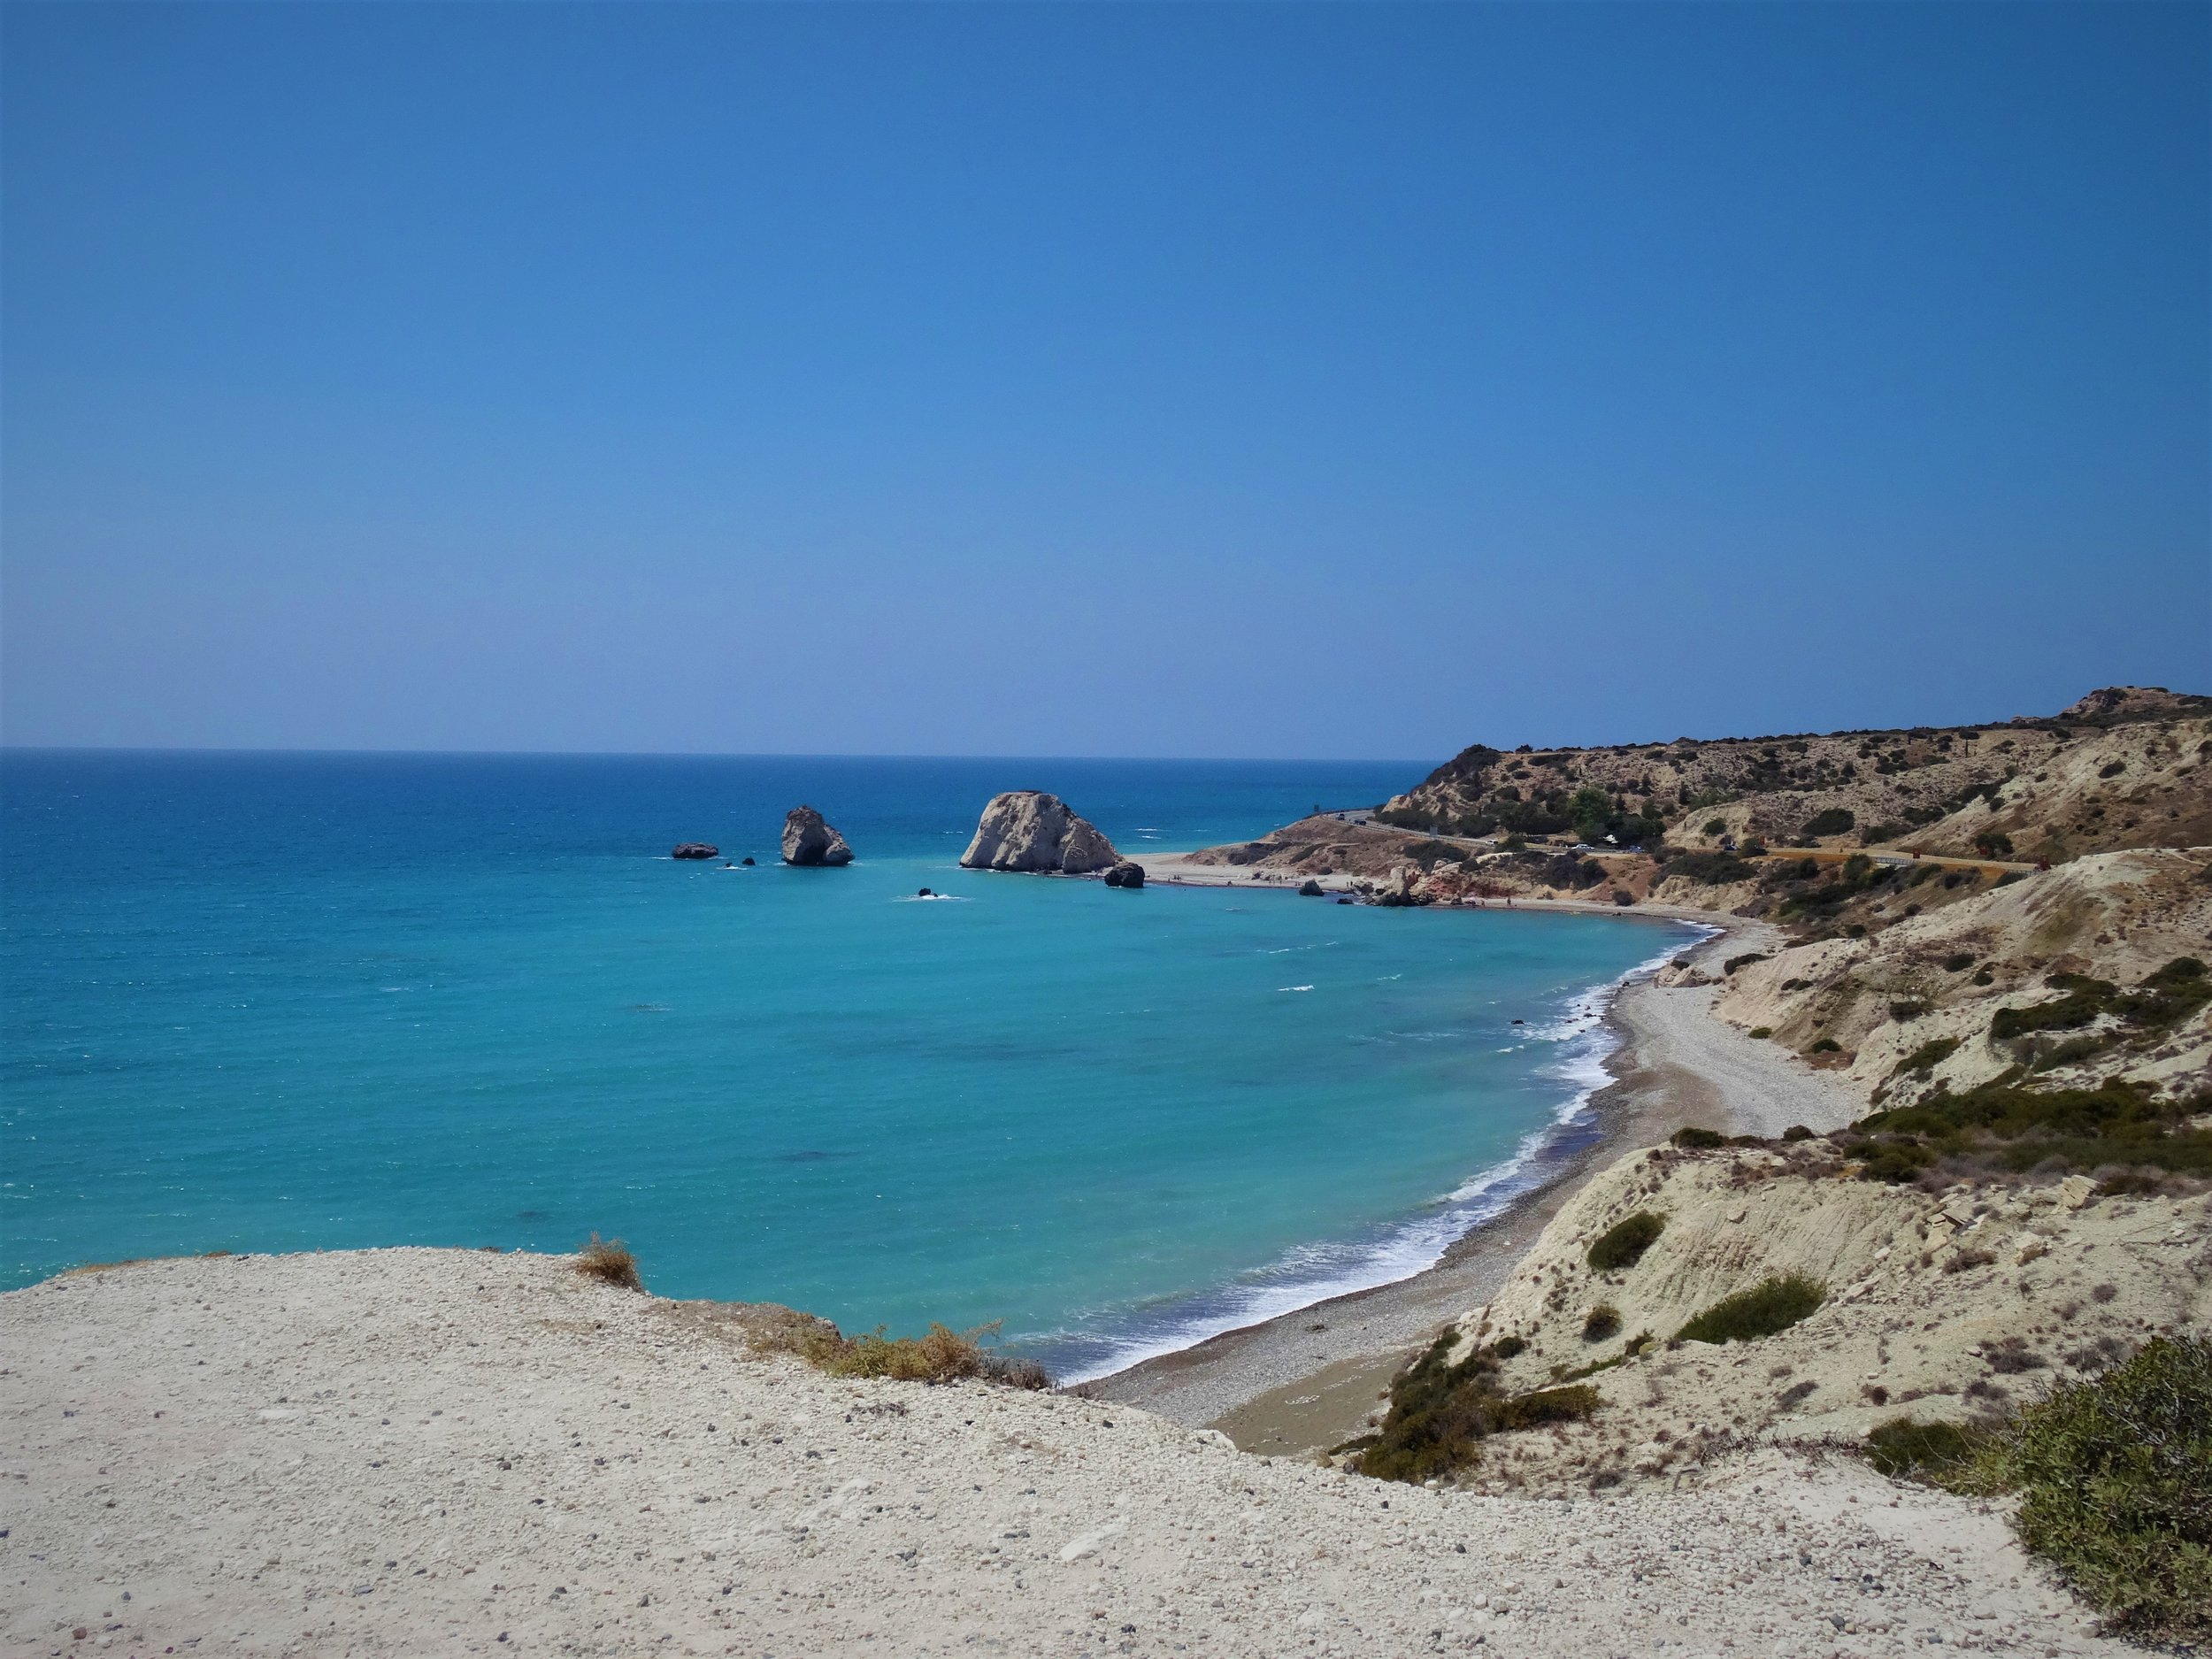 I live in Cyprus with my grandmother, in a small, rural village on the south coast. When I'm in Oxford I miss seeing the Mediterranean sea every day. Aphrodite's Rock is where legend says Aphrodite was born, rising from the sea to live on Cyprus. It's on the western side of the island, so we had a trip over there and I swam with sea turtles in the town we stayed in and got this photo on our way home.